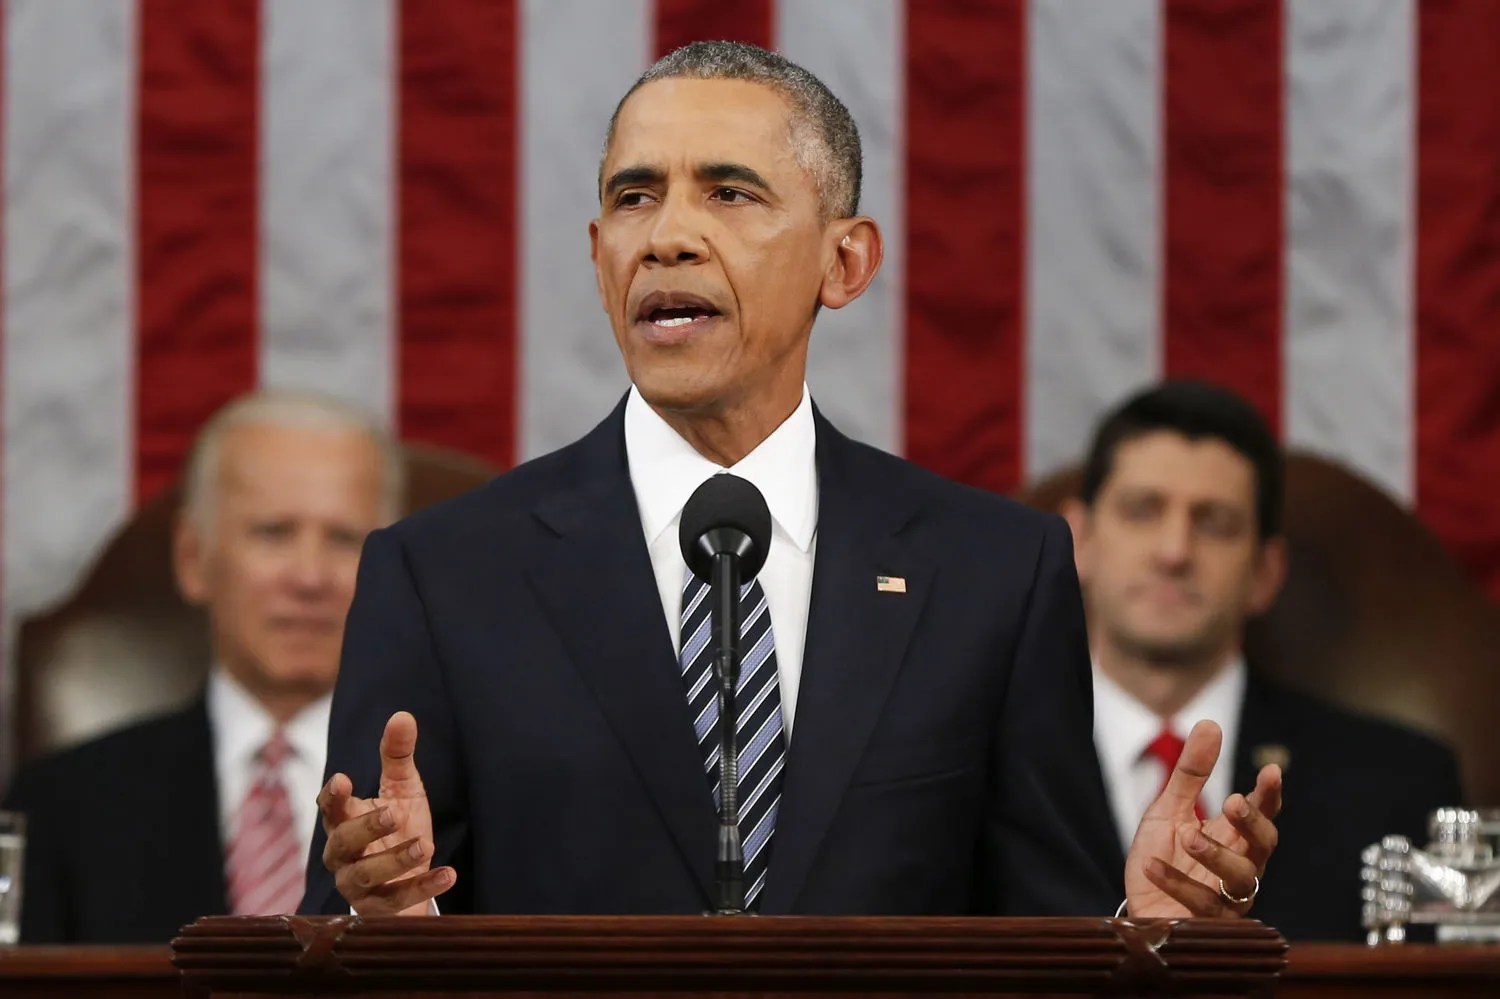 President Obama Has Issued Sanctions Against Russia For